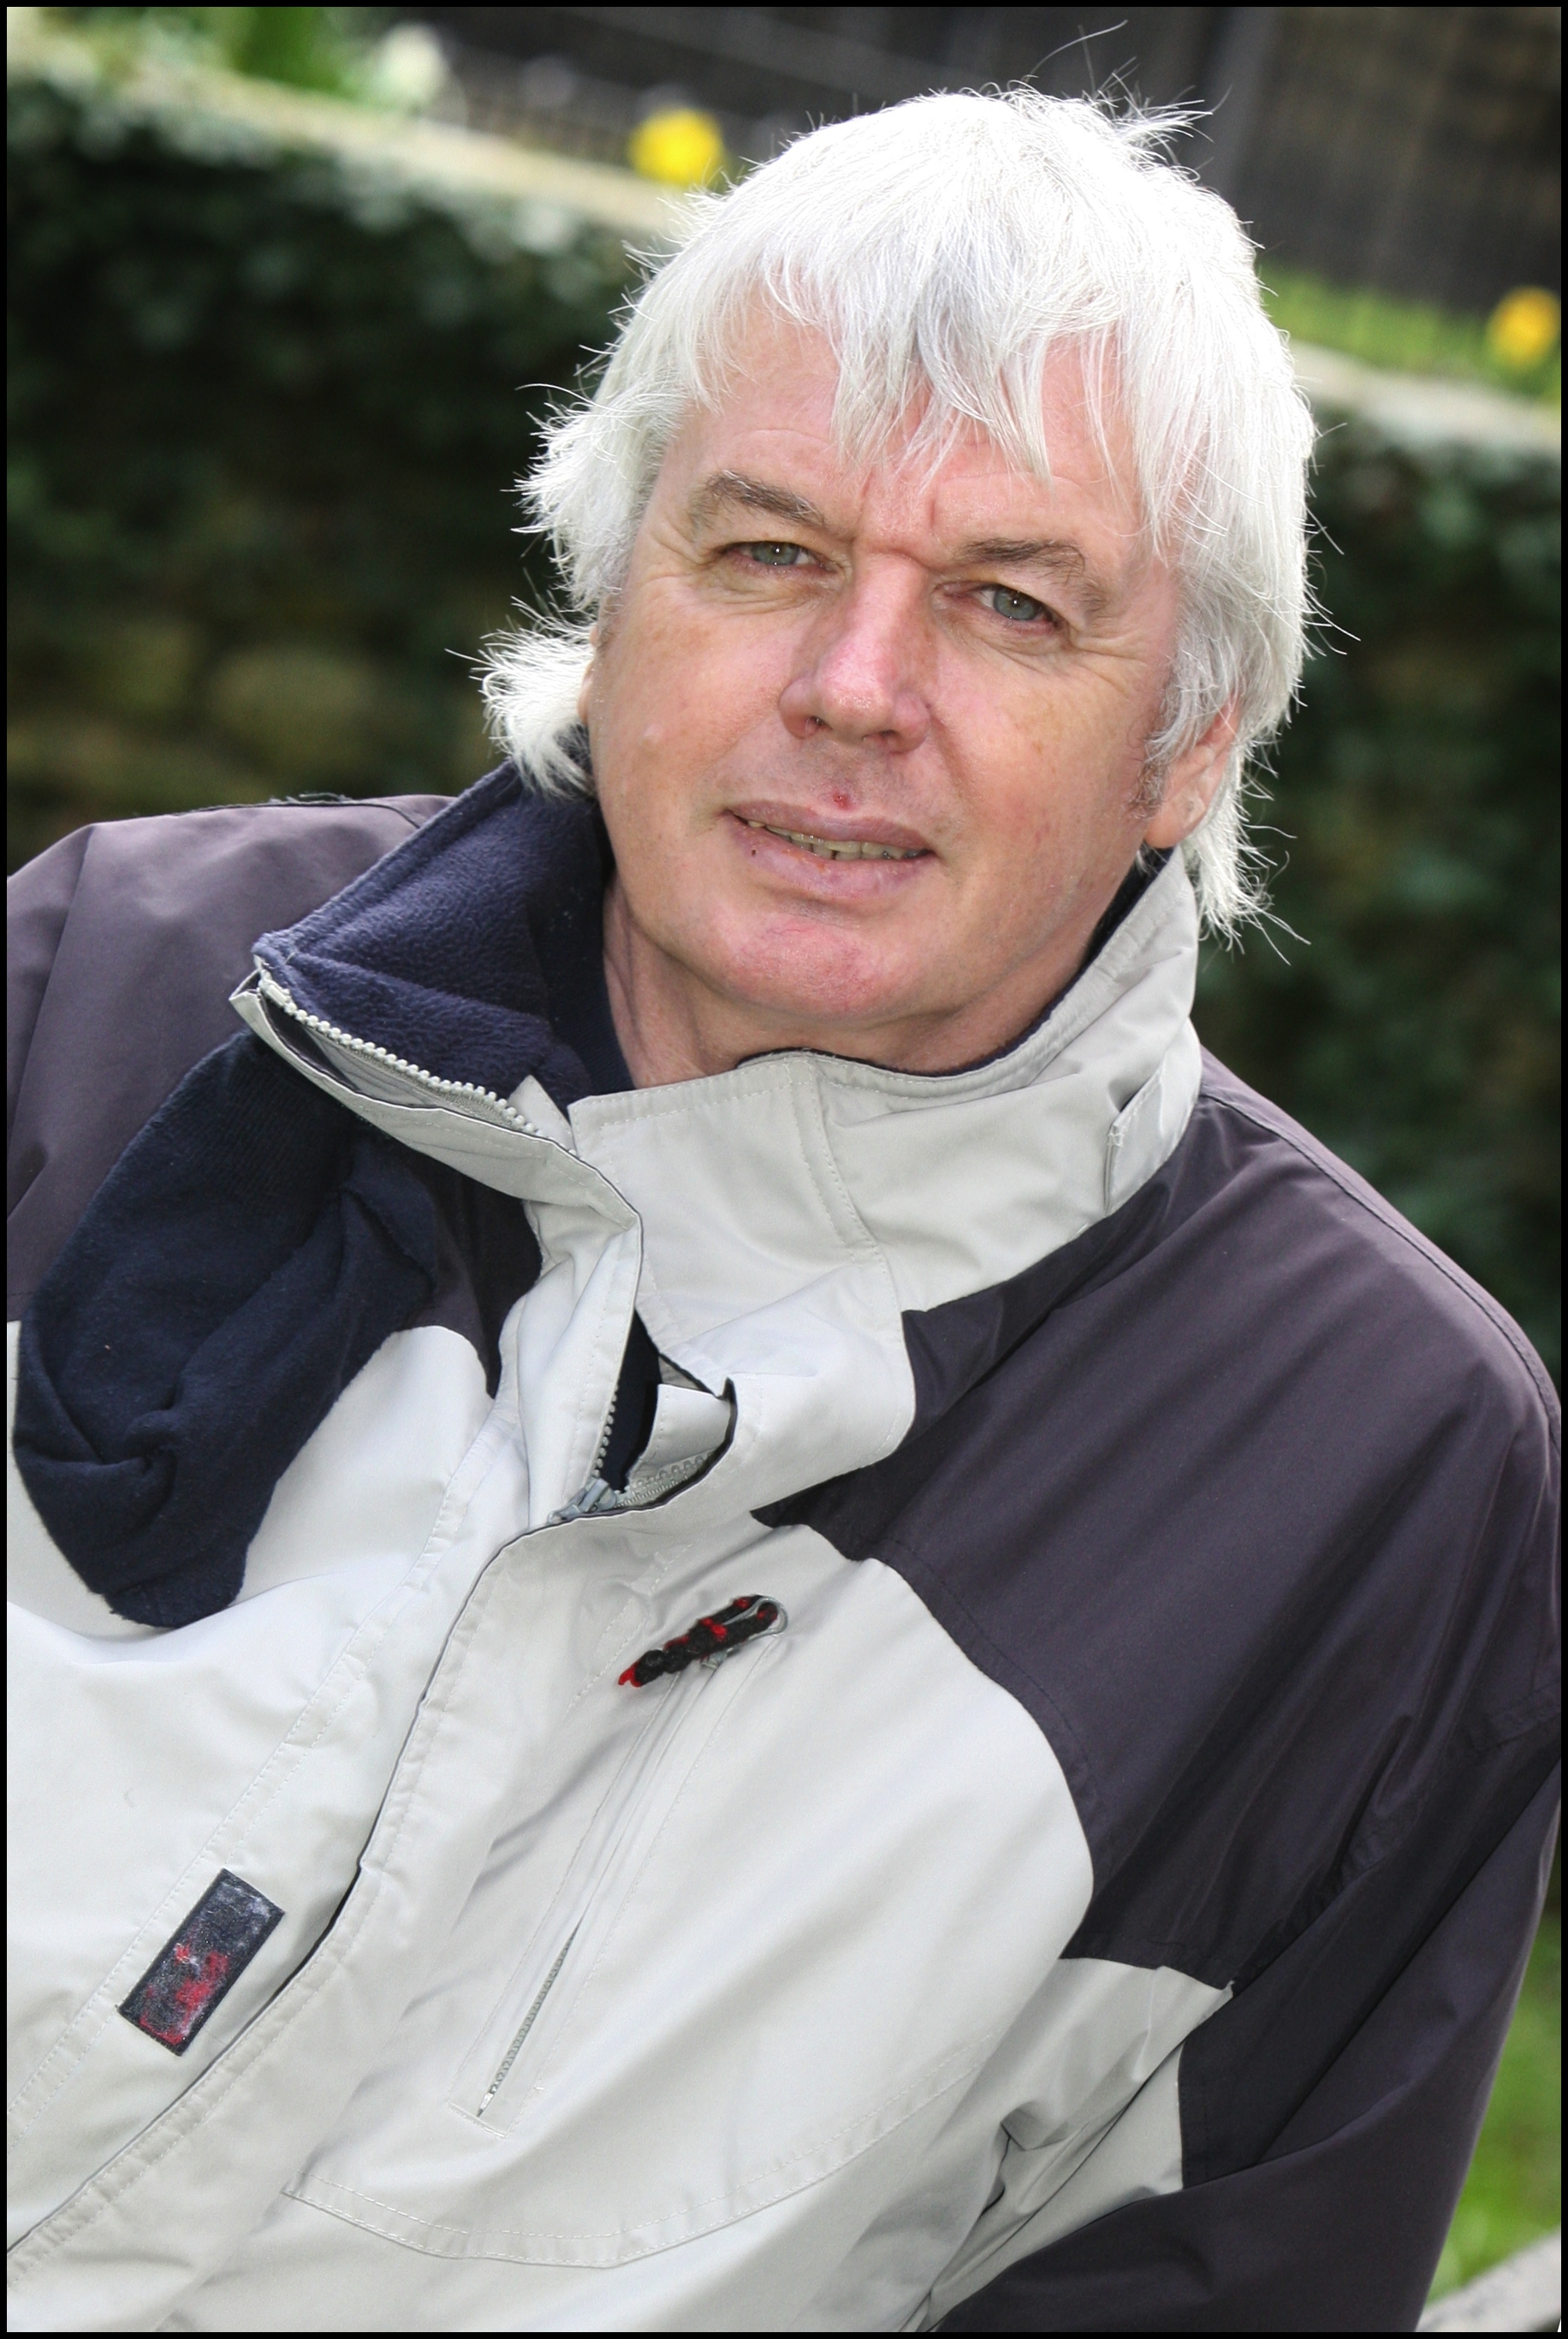 CONTROVERSY: David Icke believes in an inter-dimensional race of reptiles